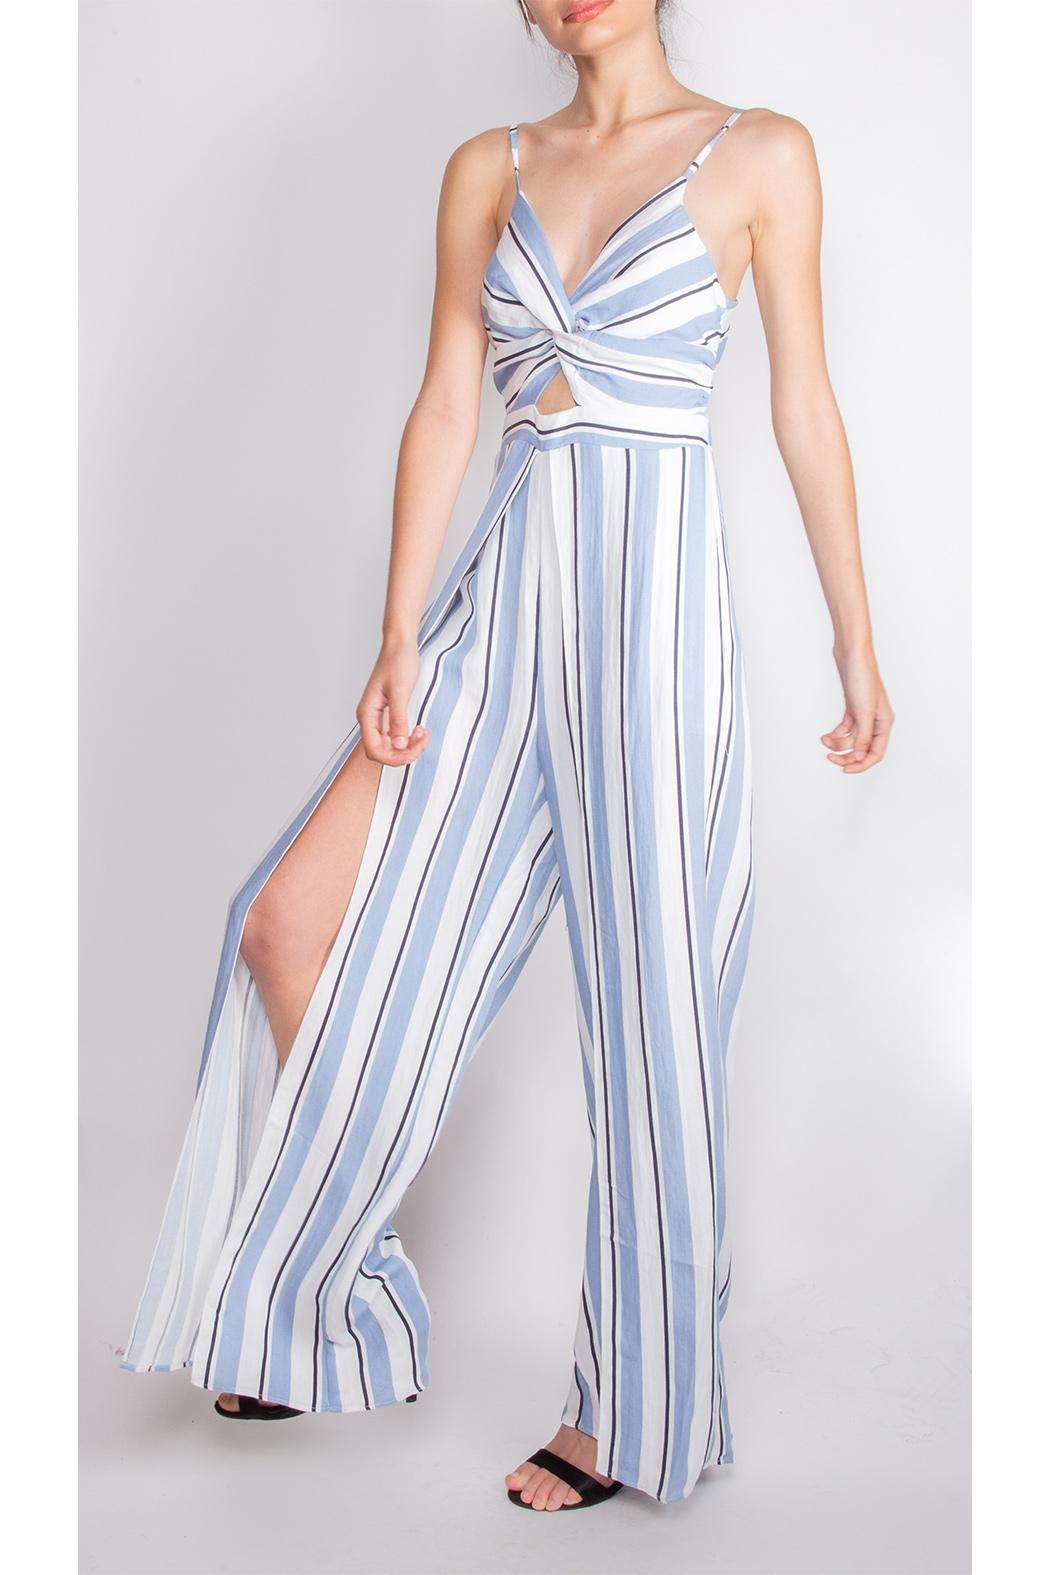 luxxel Striped Open-Leg Jumpsuit - Side Cropped Image